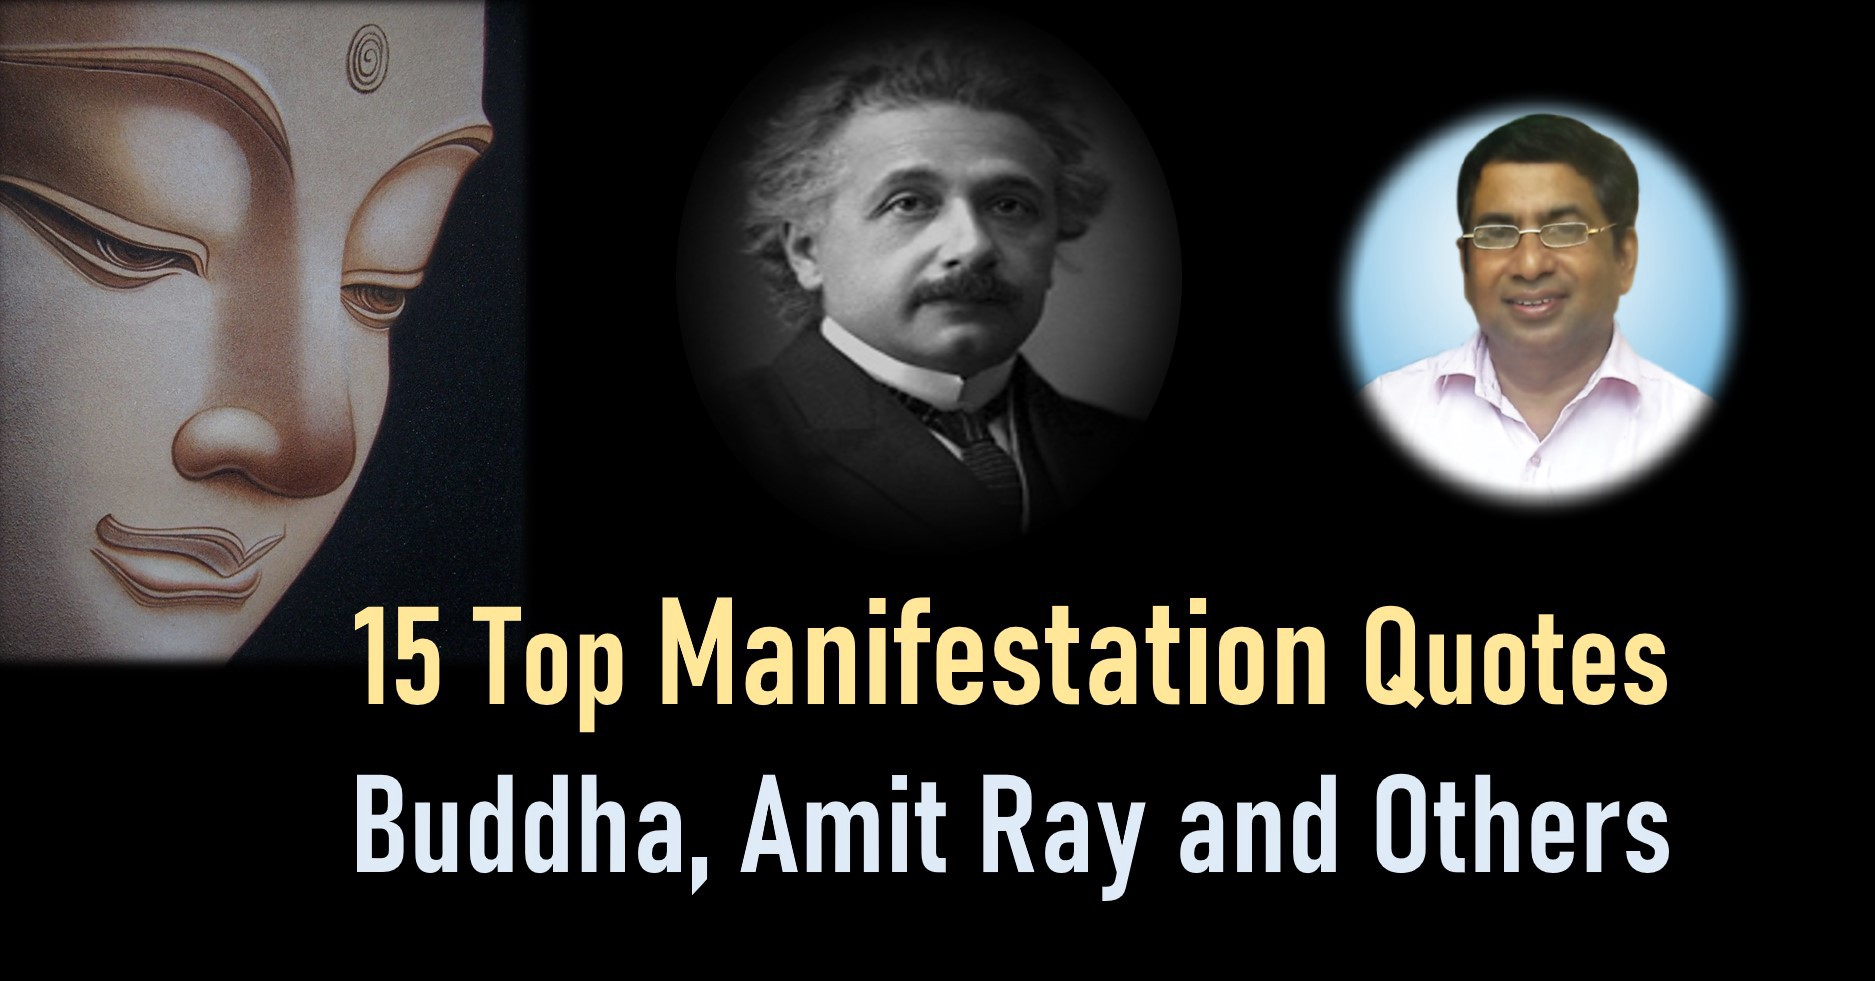 15 Top Manifestation Quotes Buddha, Amit Ray, and others